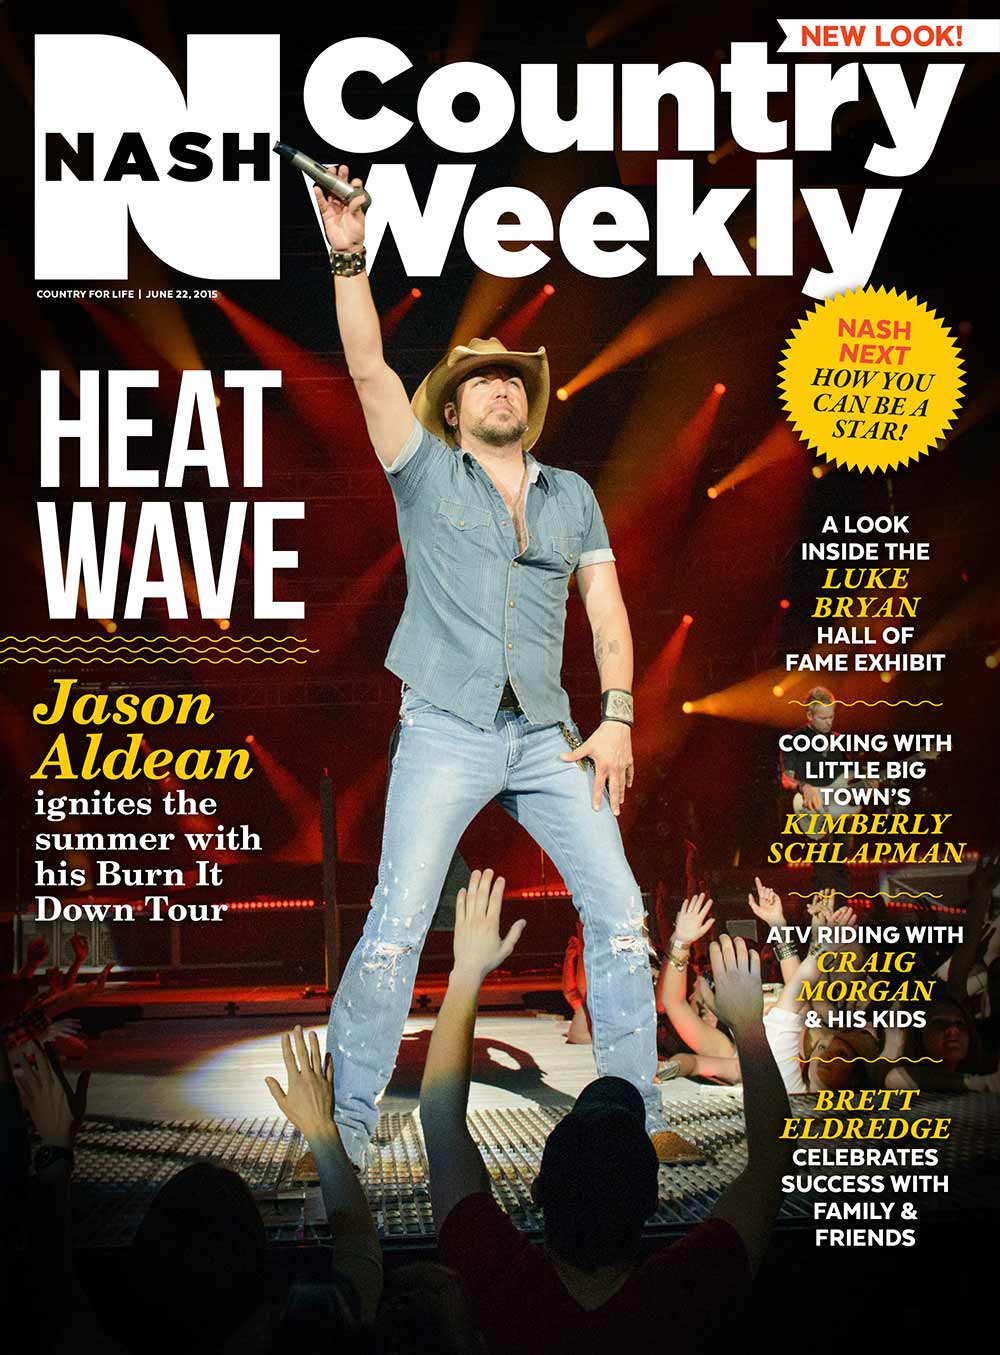 Country Weekly 2015-06-22 Heat Wave: Jason Aldean Ignites the Summer with His Burn It Down Tour